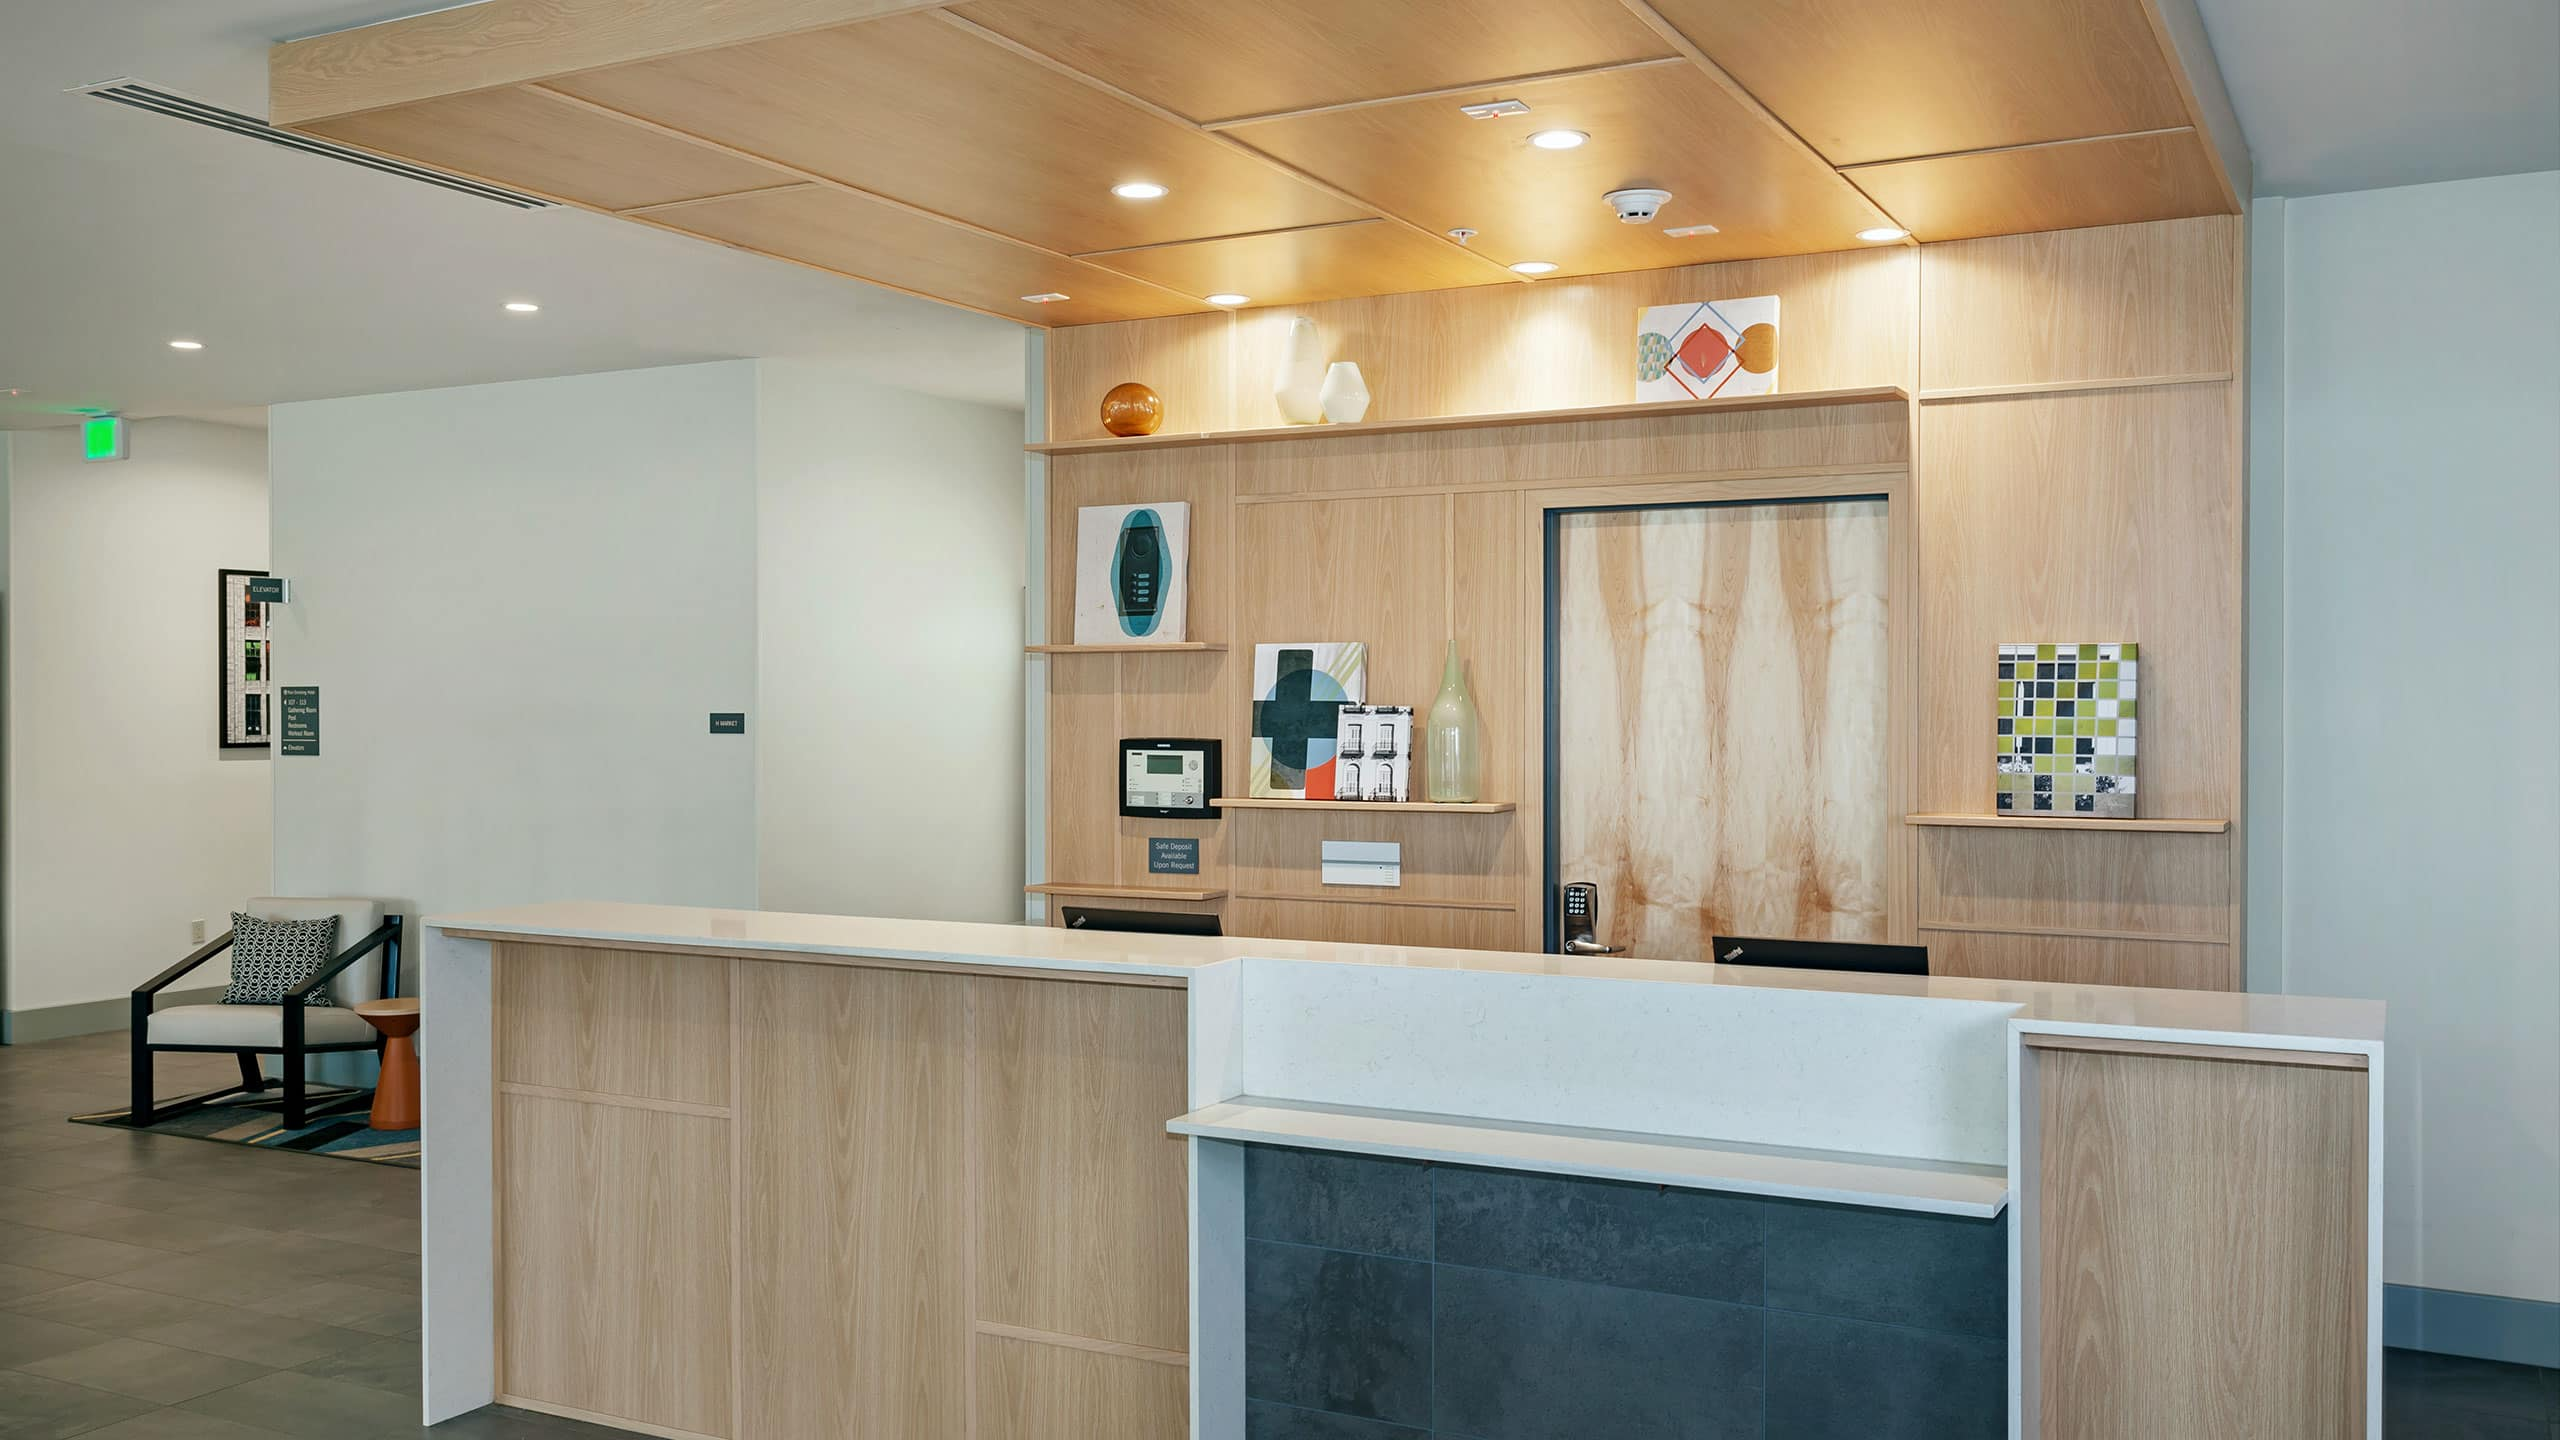 Relaxing Hotel Near Anchorage Airport | Hyatt House Anchorage